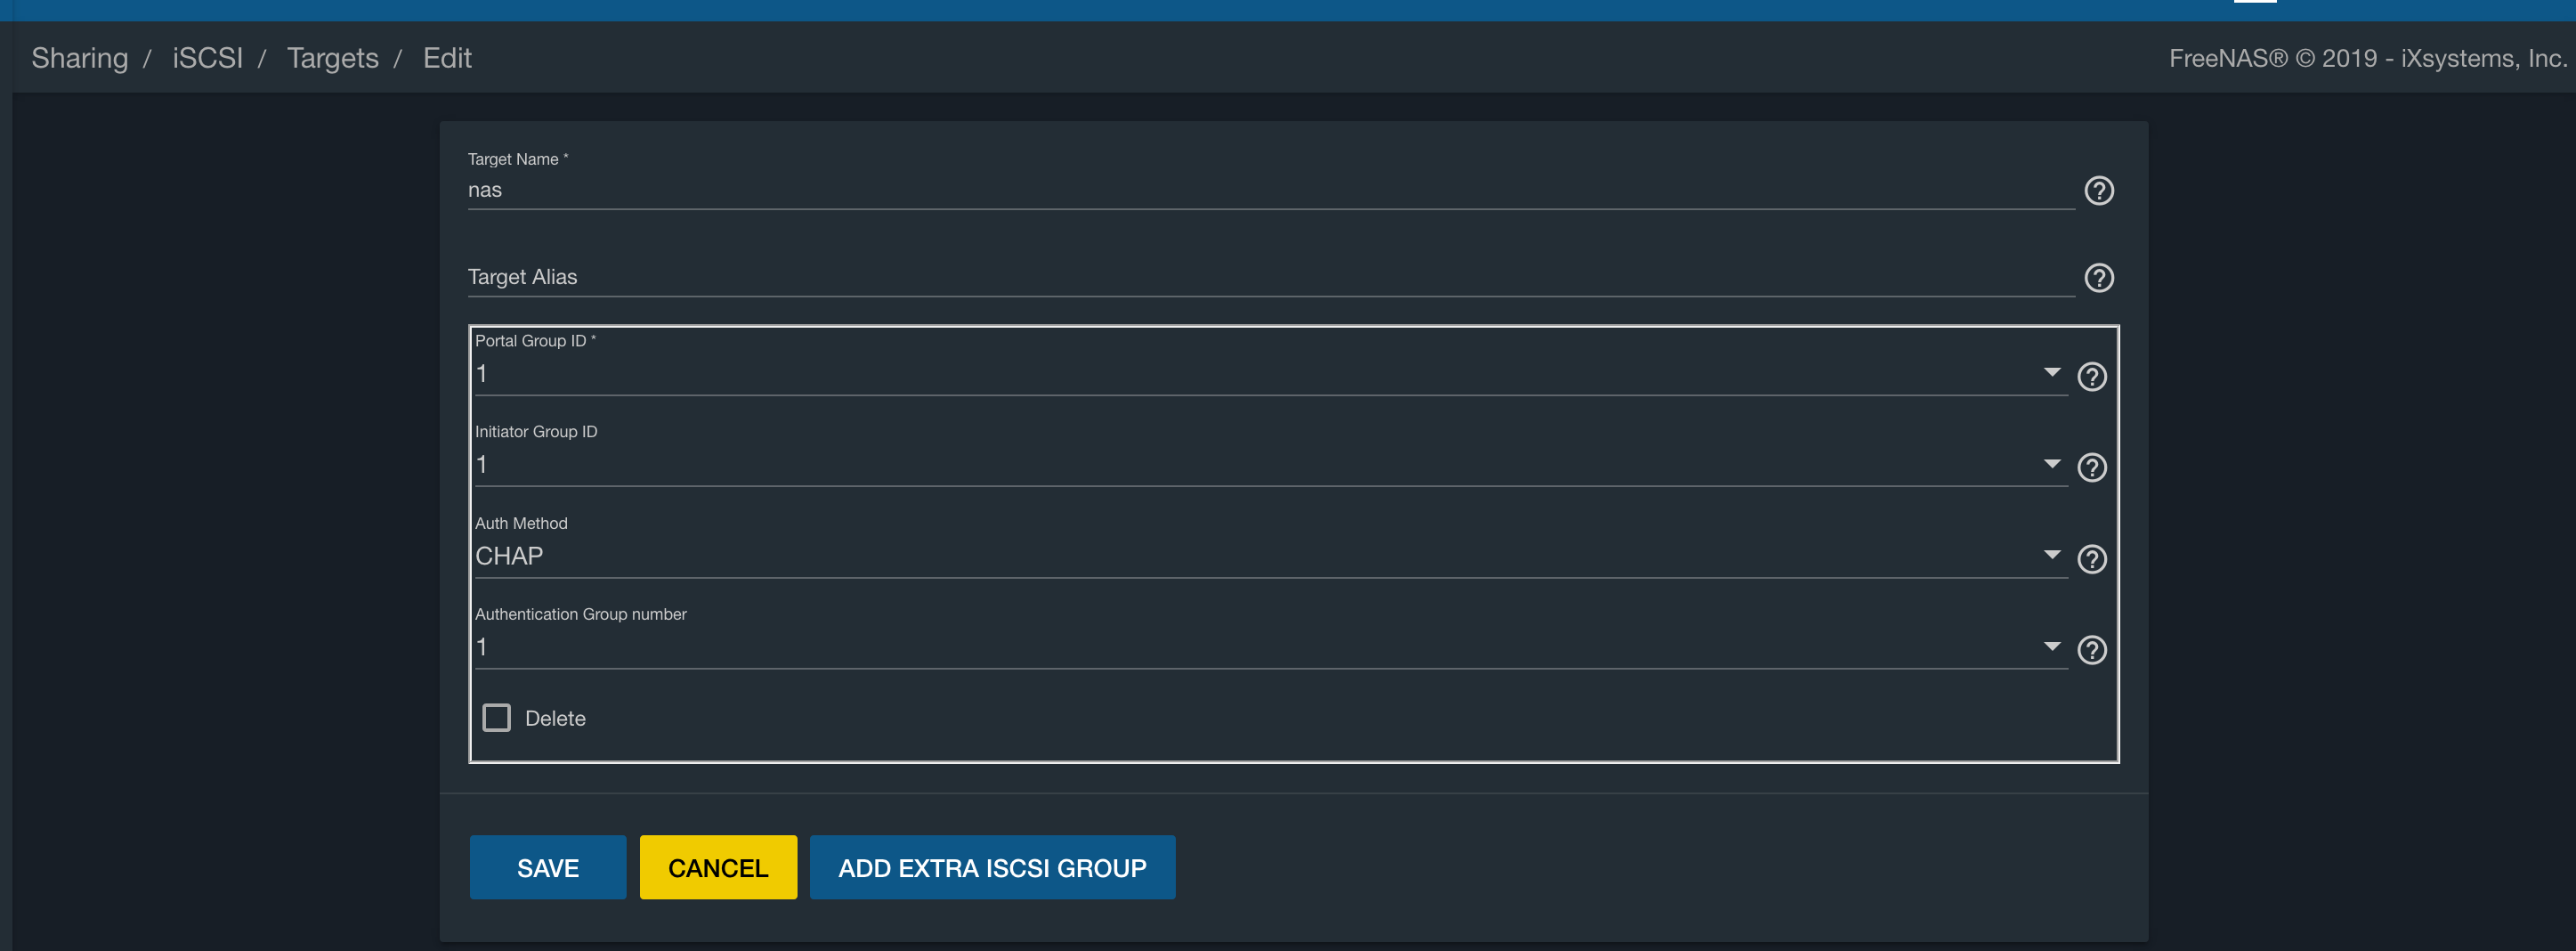 FreeNAS Pool Migration, iSCSI doesn't show devices - BSD